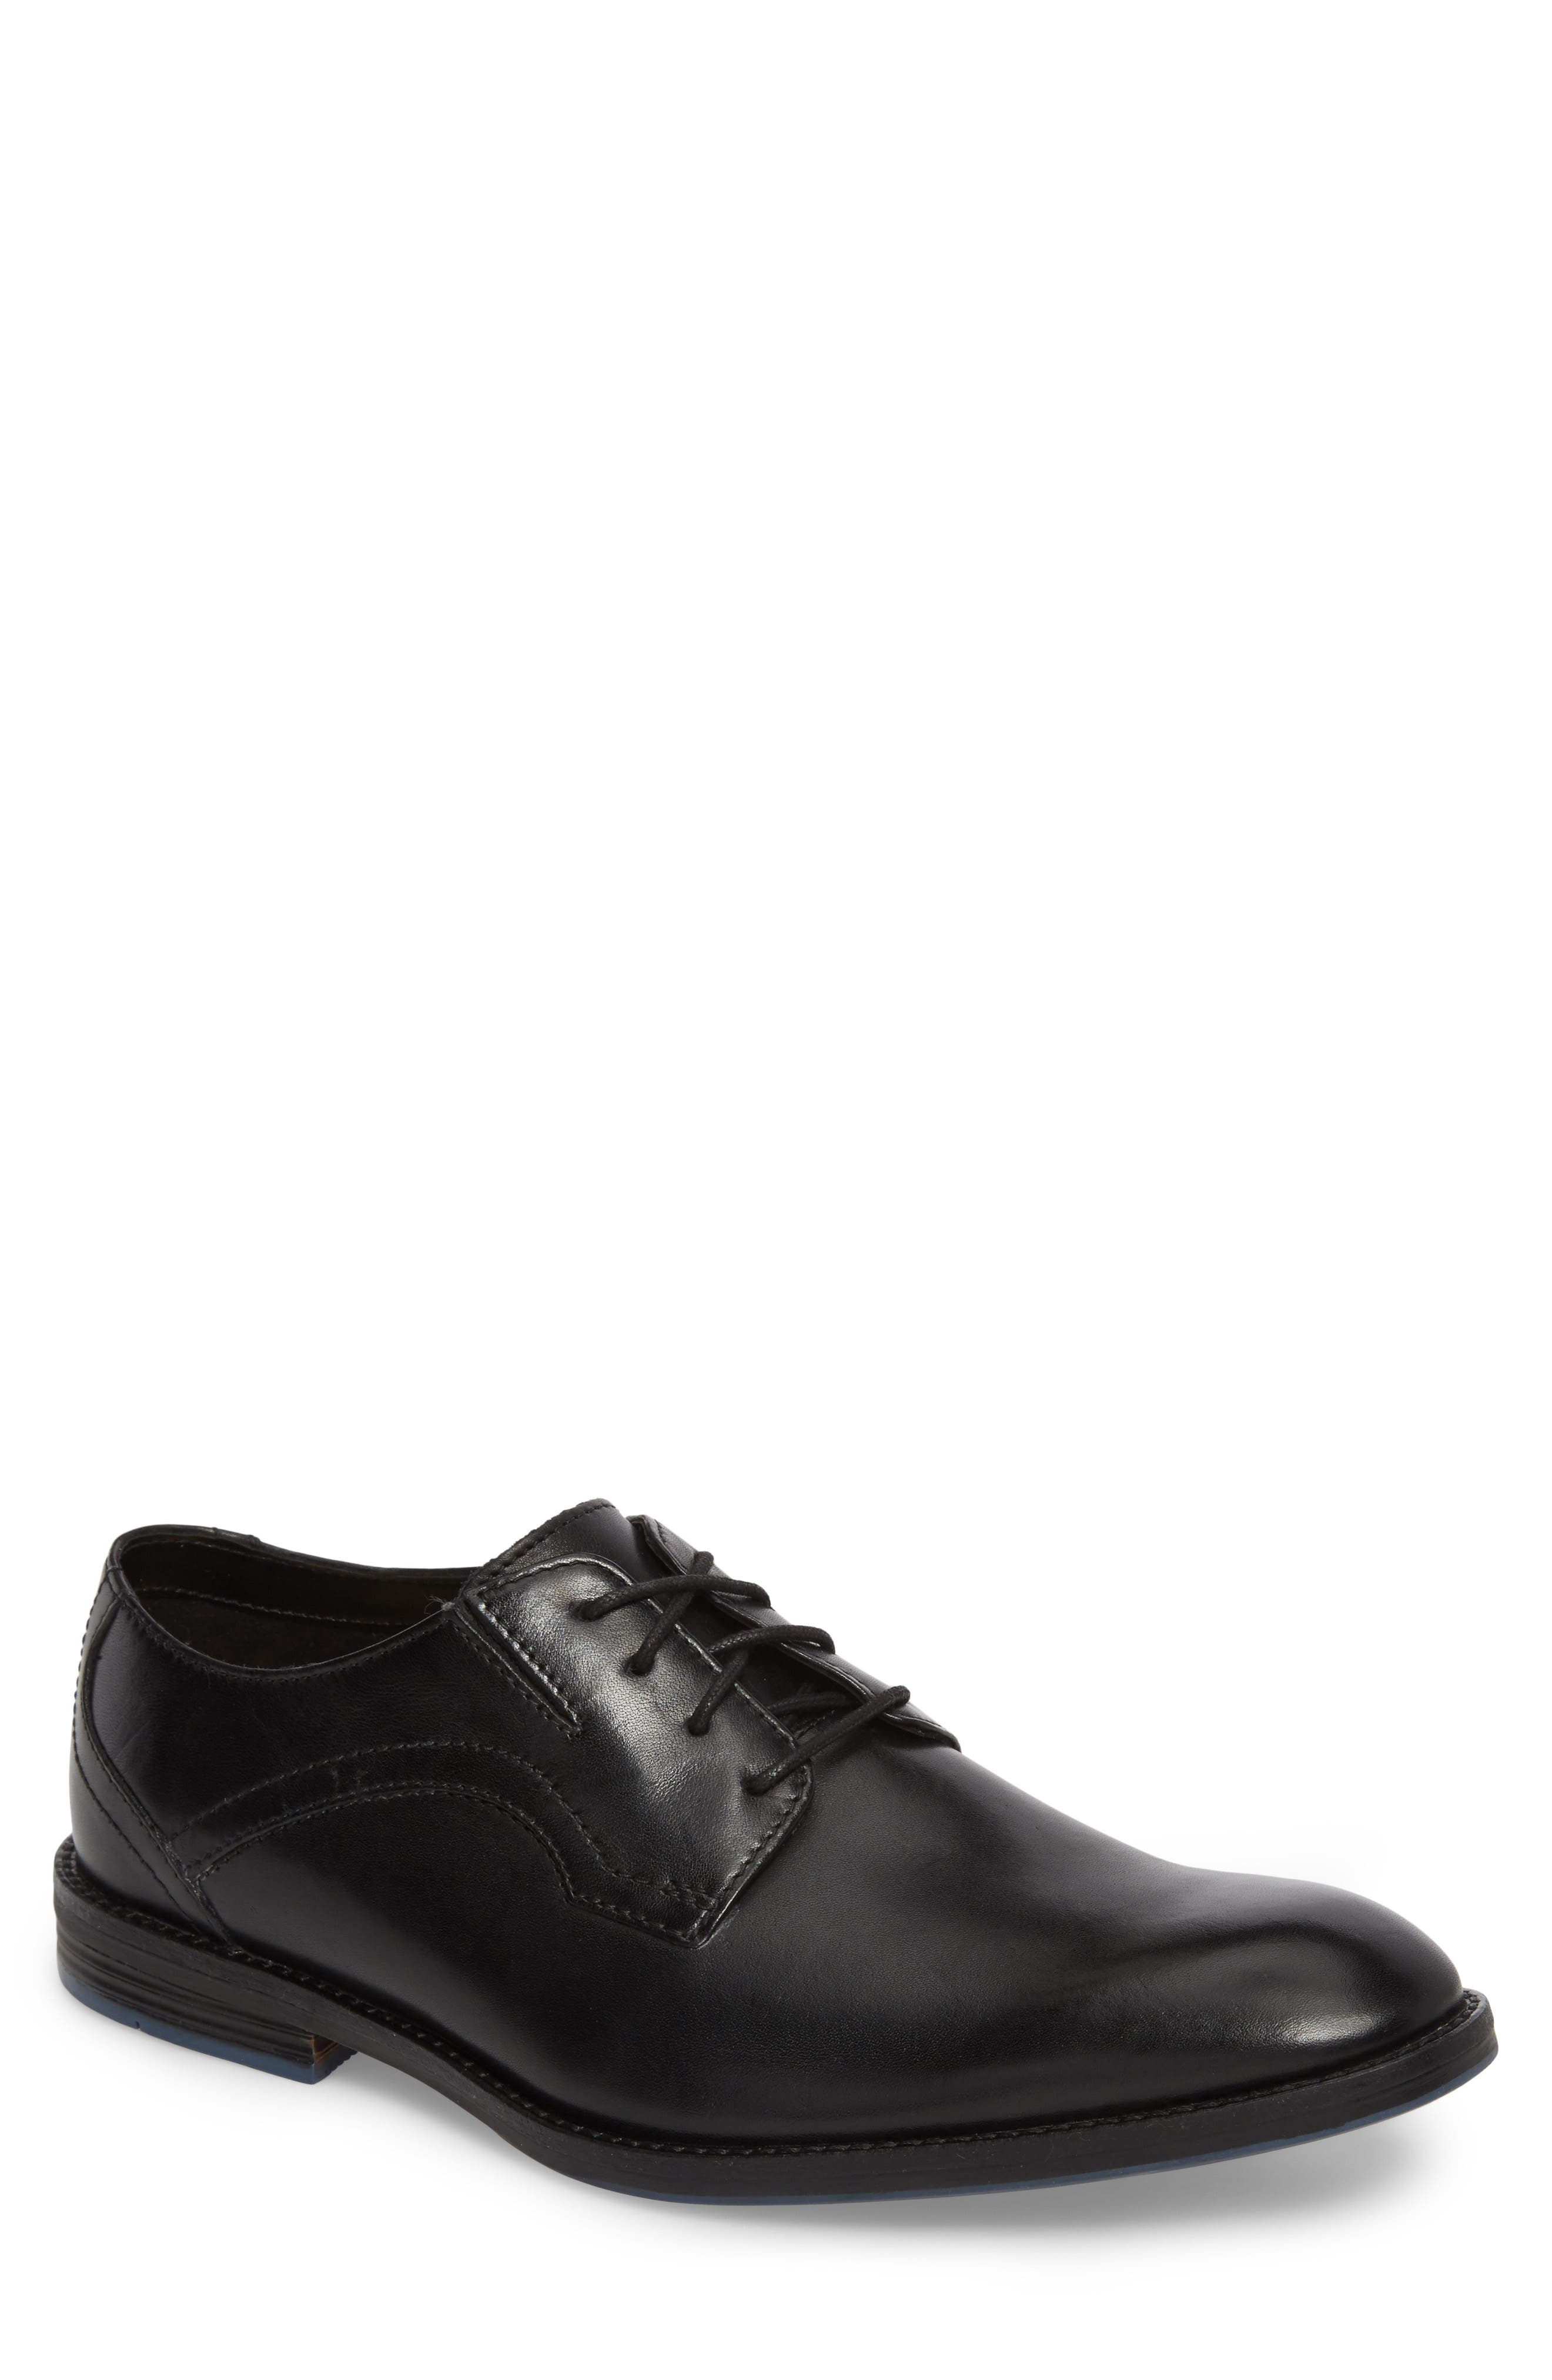 Clarks<sup>®</sup> Prangley Walk Plain Toe Derby,                         Main,                         color, Black Leather